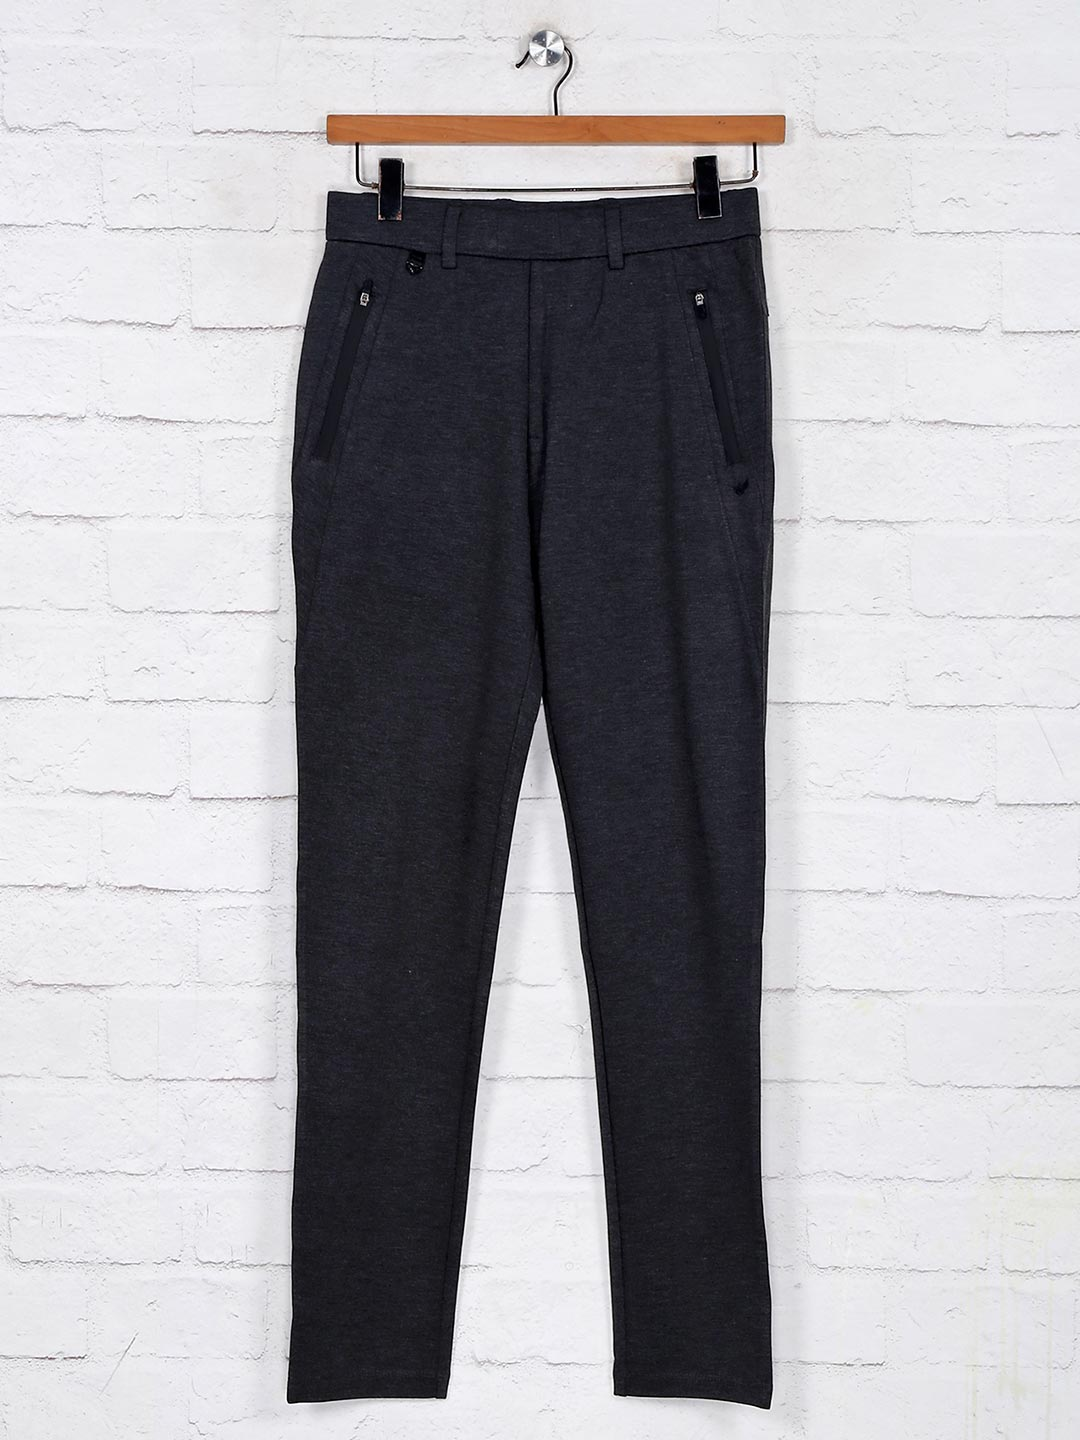 Maml grey solid cotton track pant?imgeng=w_400